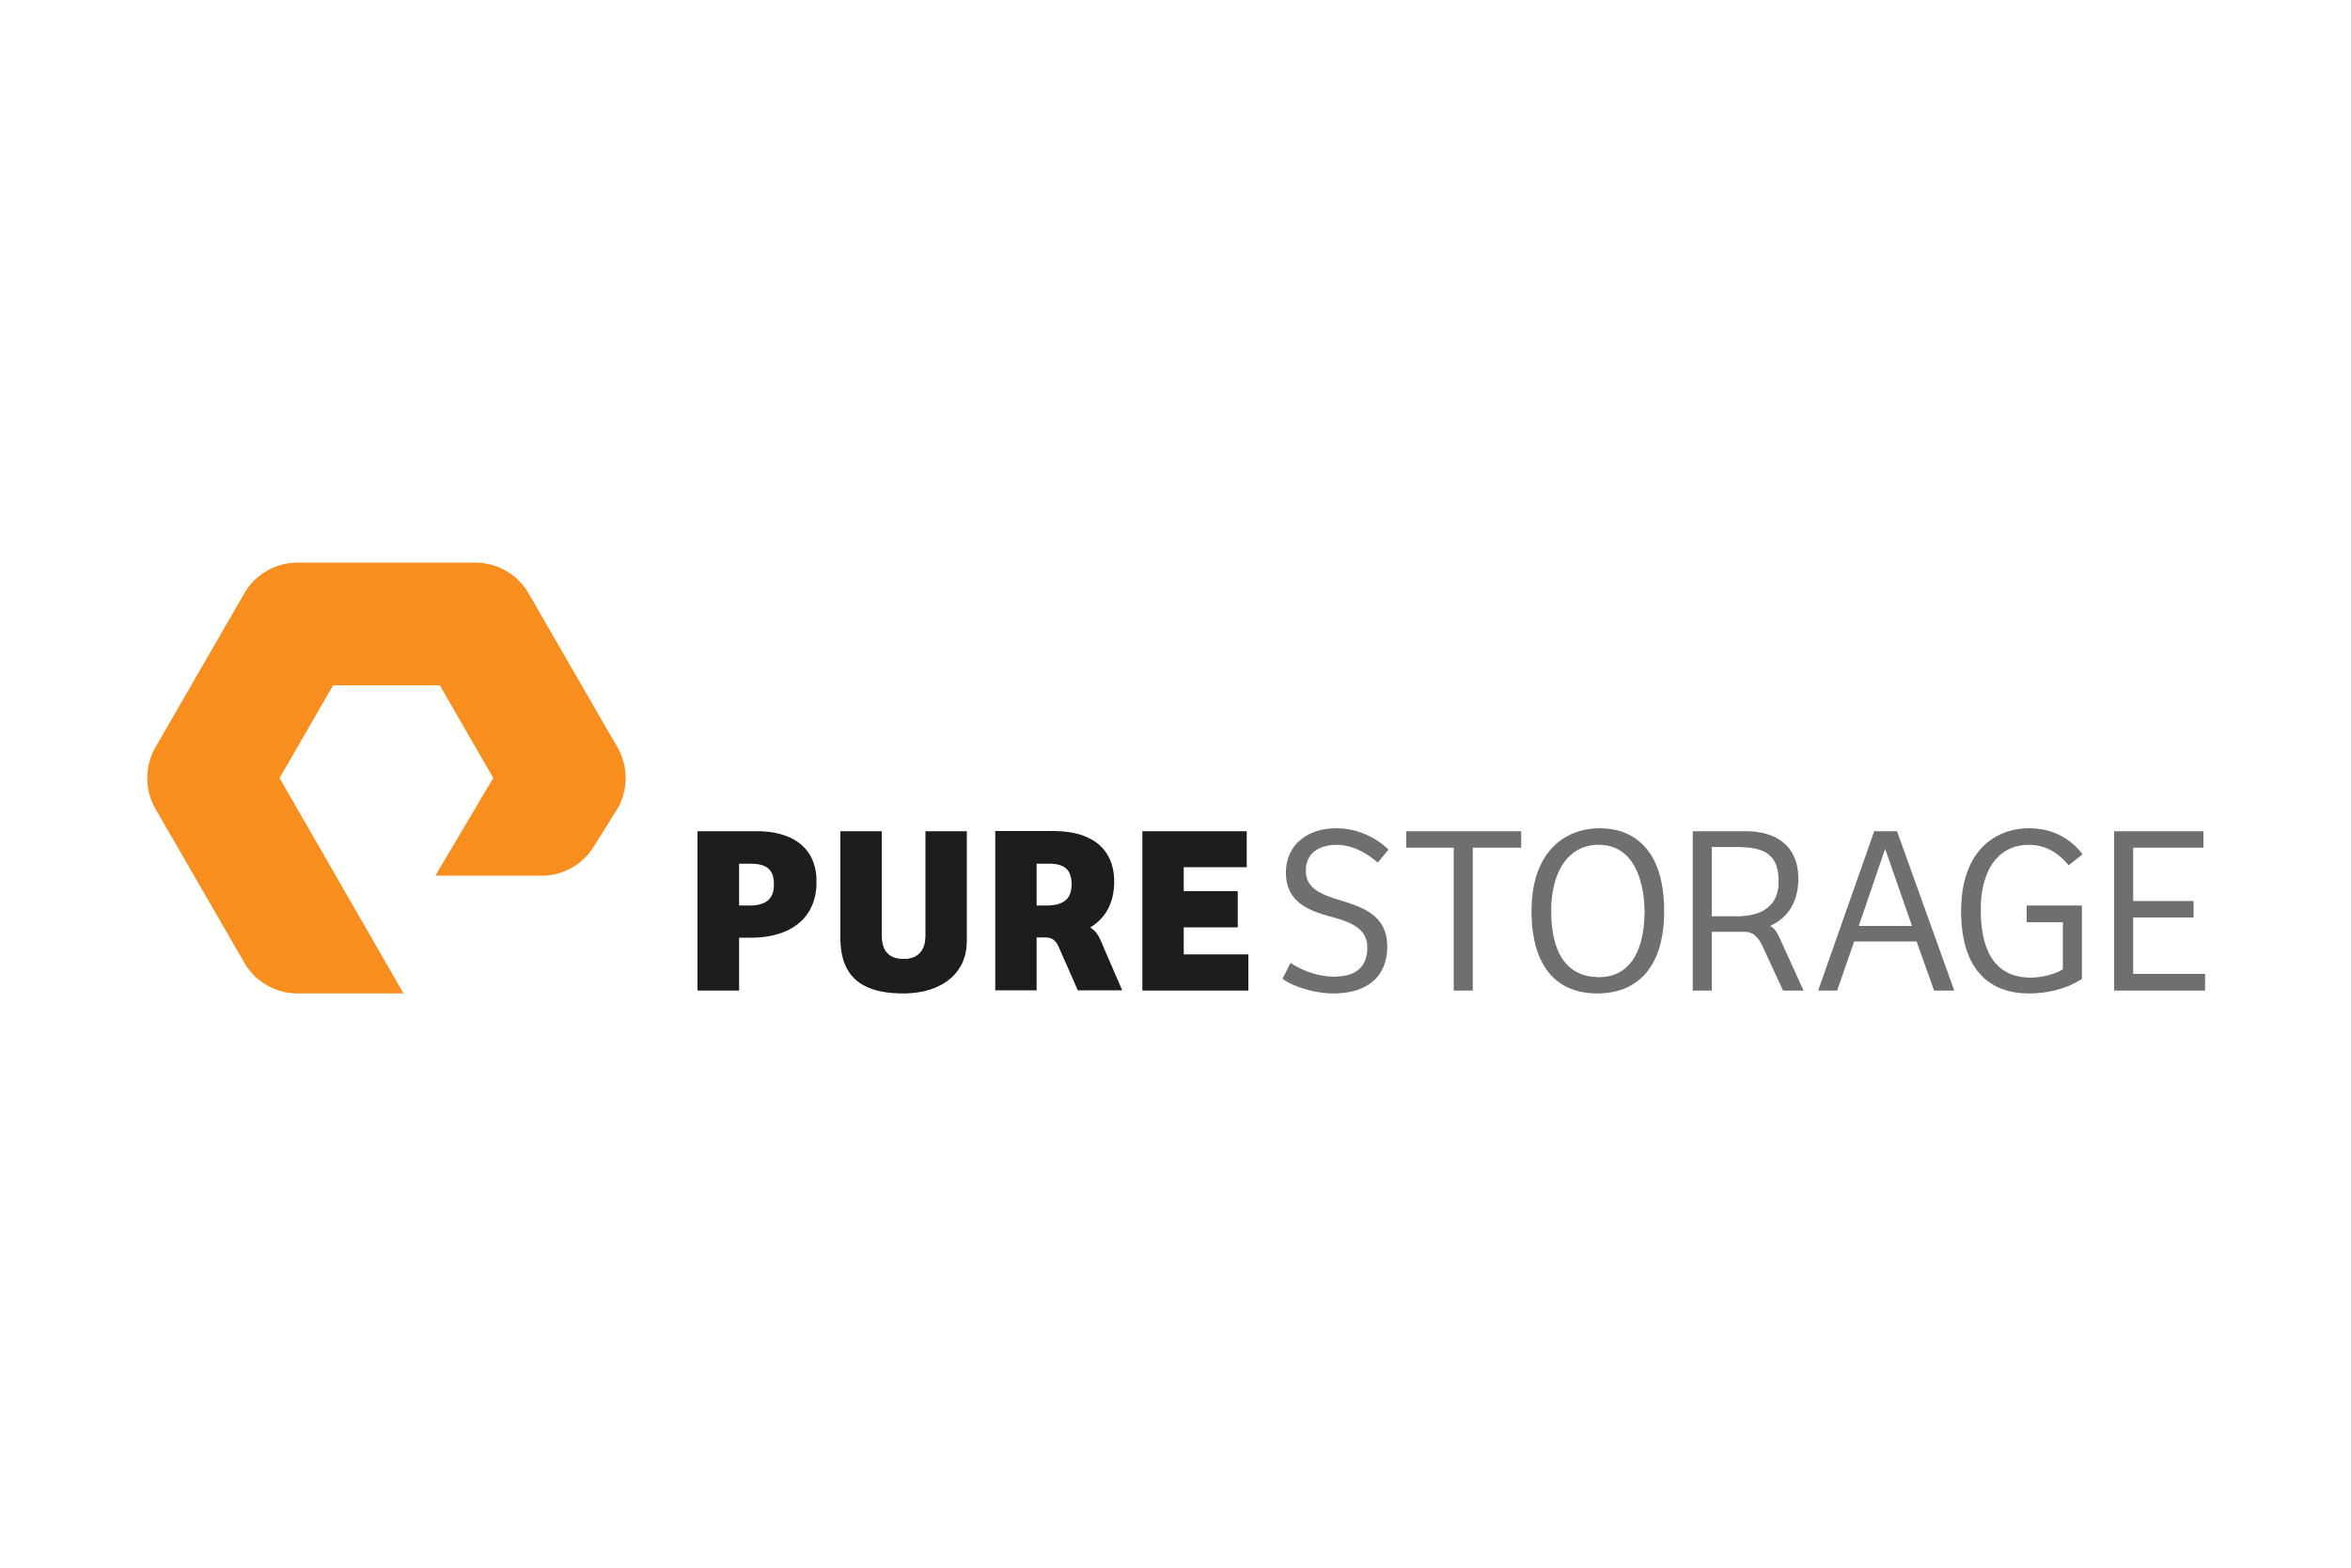 pure_storage.png